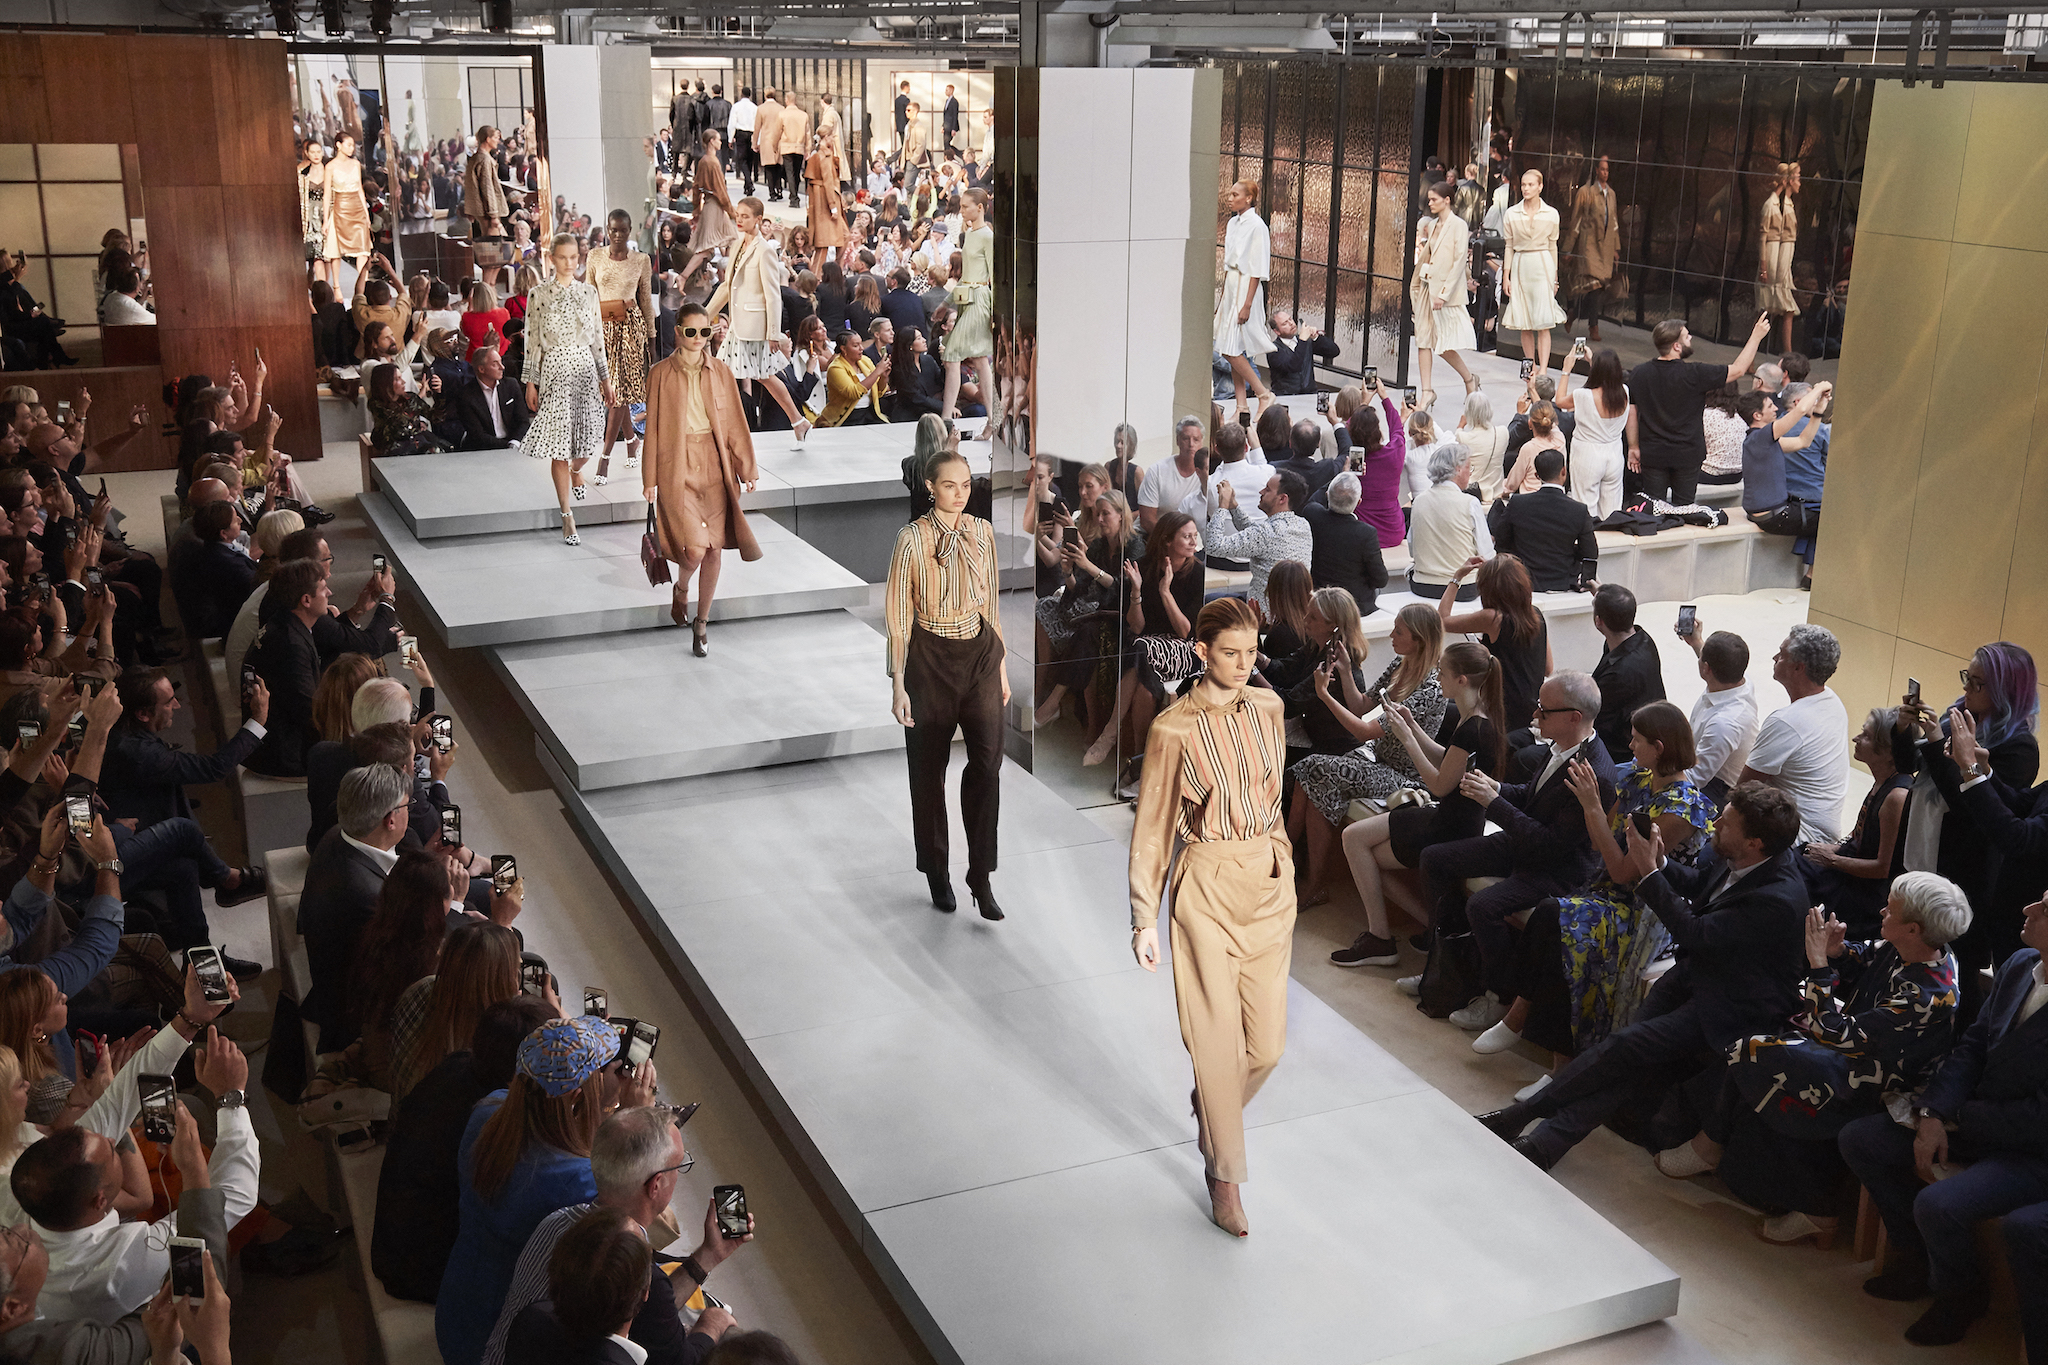 The Biggest Highlights from LFW 2019 You Don't Want To Miss The Biggest Highlights from LFW 2019 You Don't Want To Miss new pictures